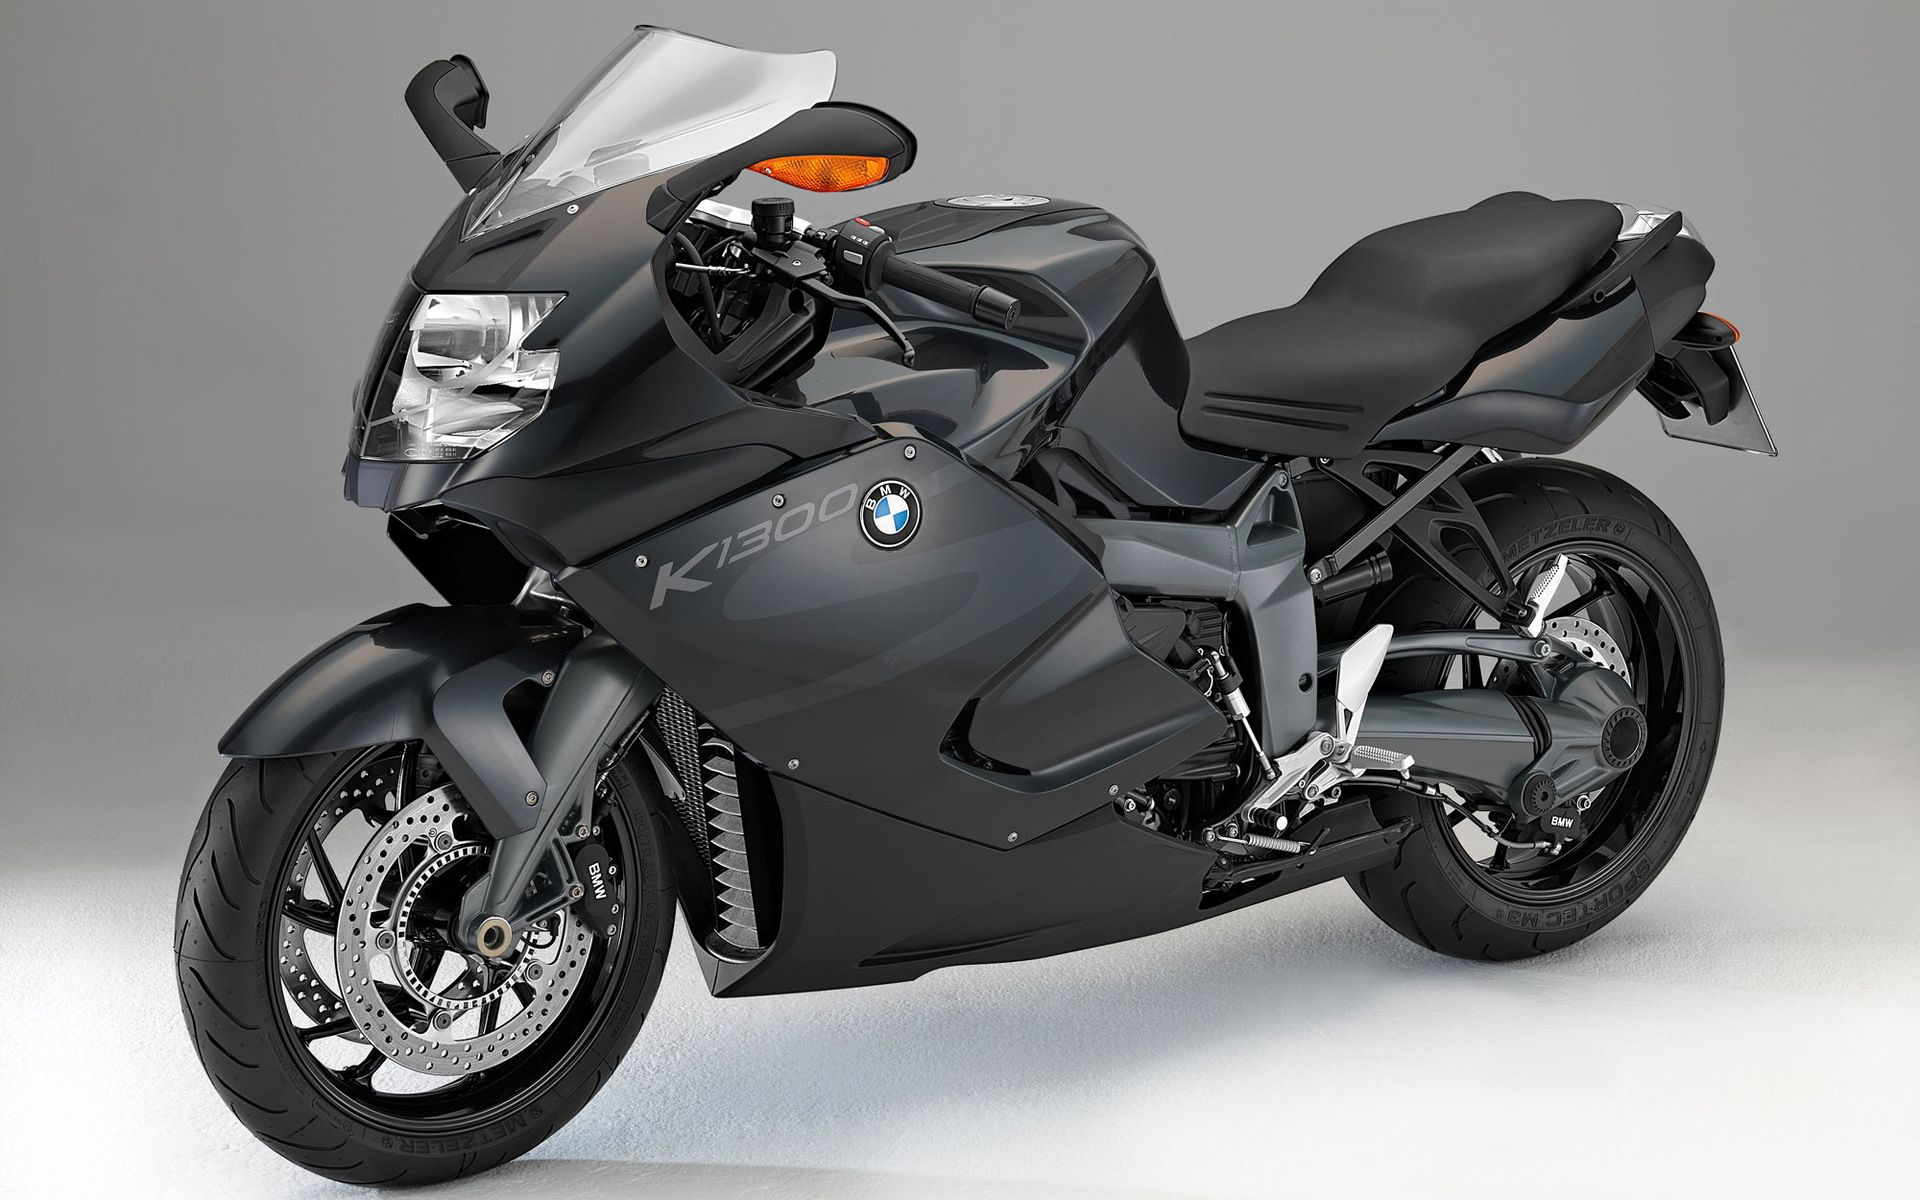 Wallpaper download bike - Find This Pin And More On Download Wallpaper By Wallpaper4676